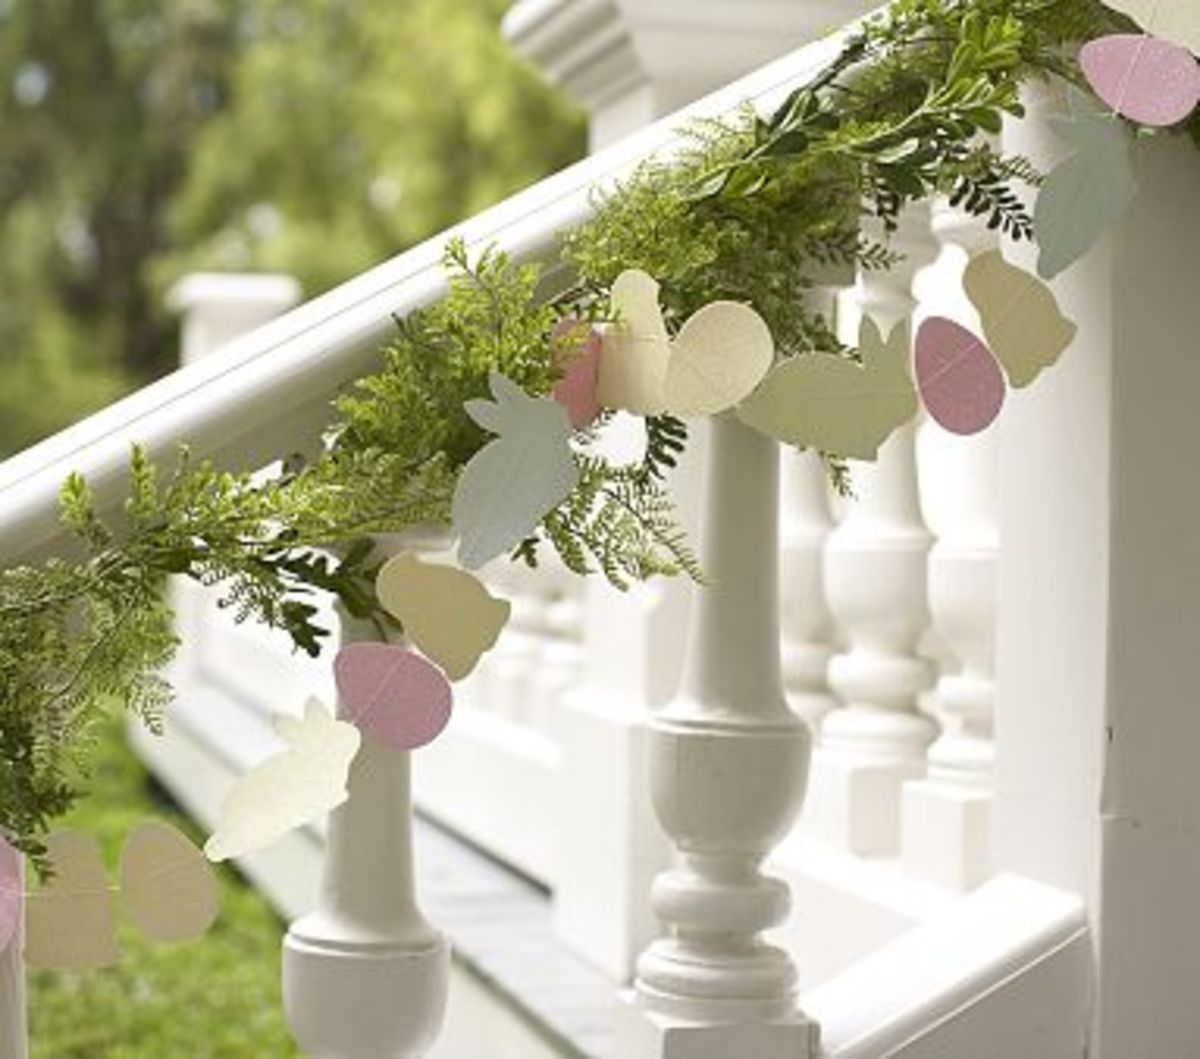 Easter Garland on an Exterior Railing